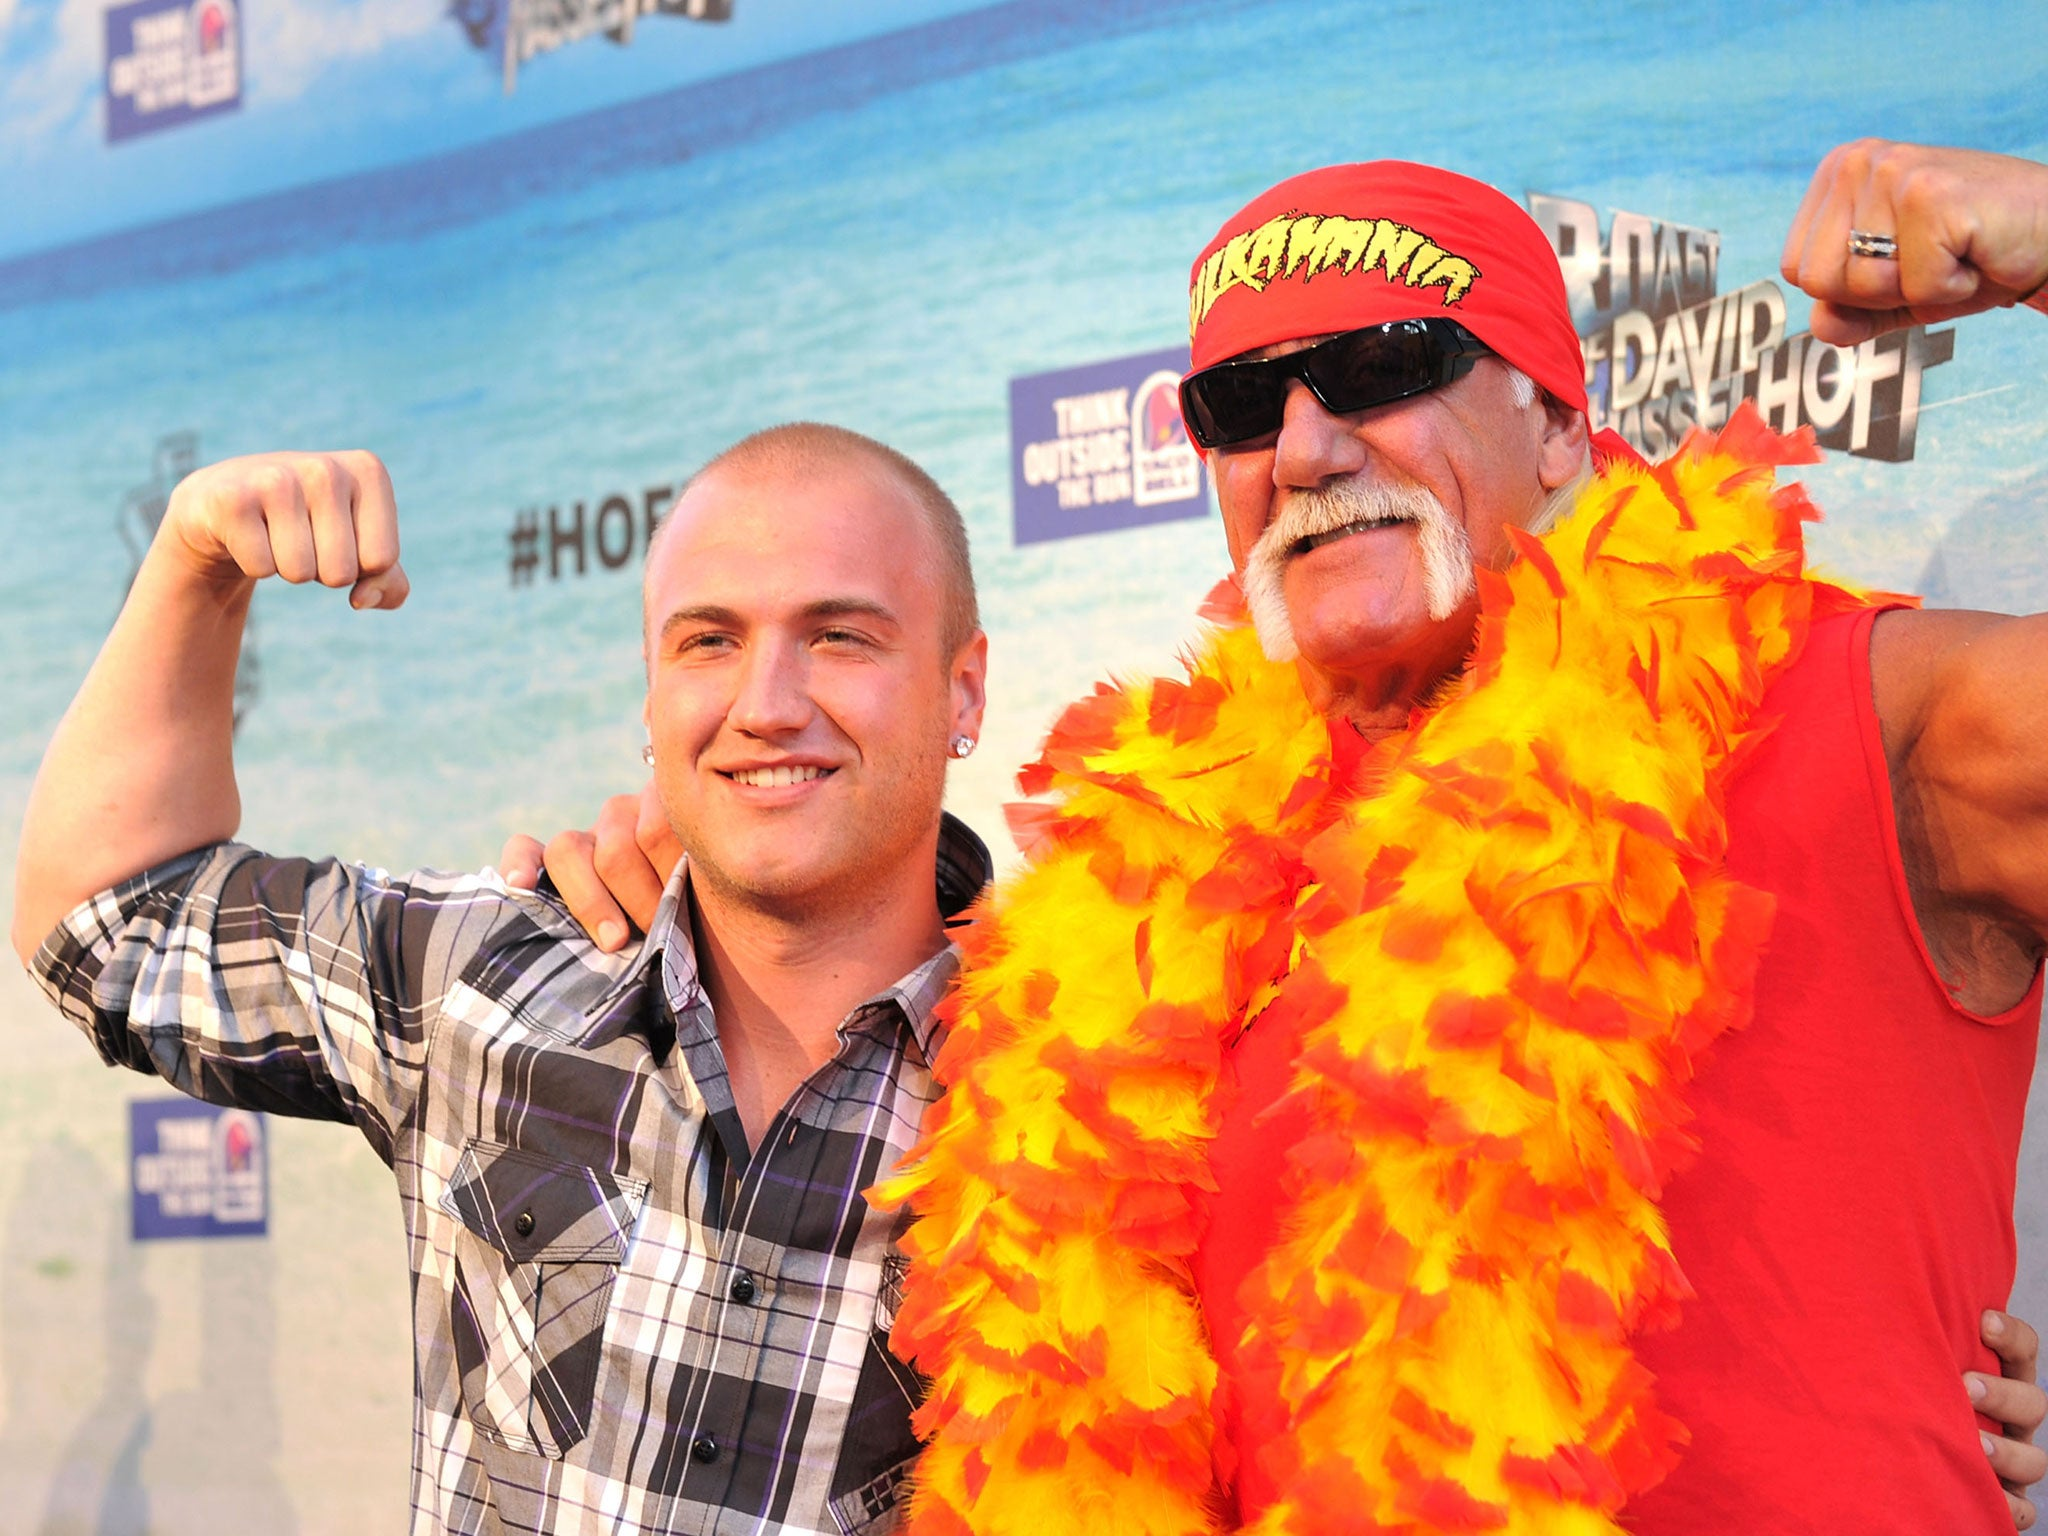 ICloud Nick Hogan naked (14 photo), Is a cute